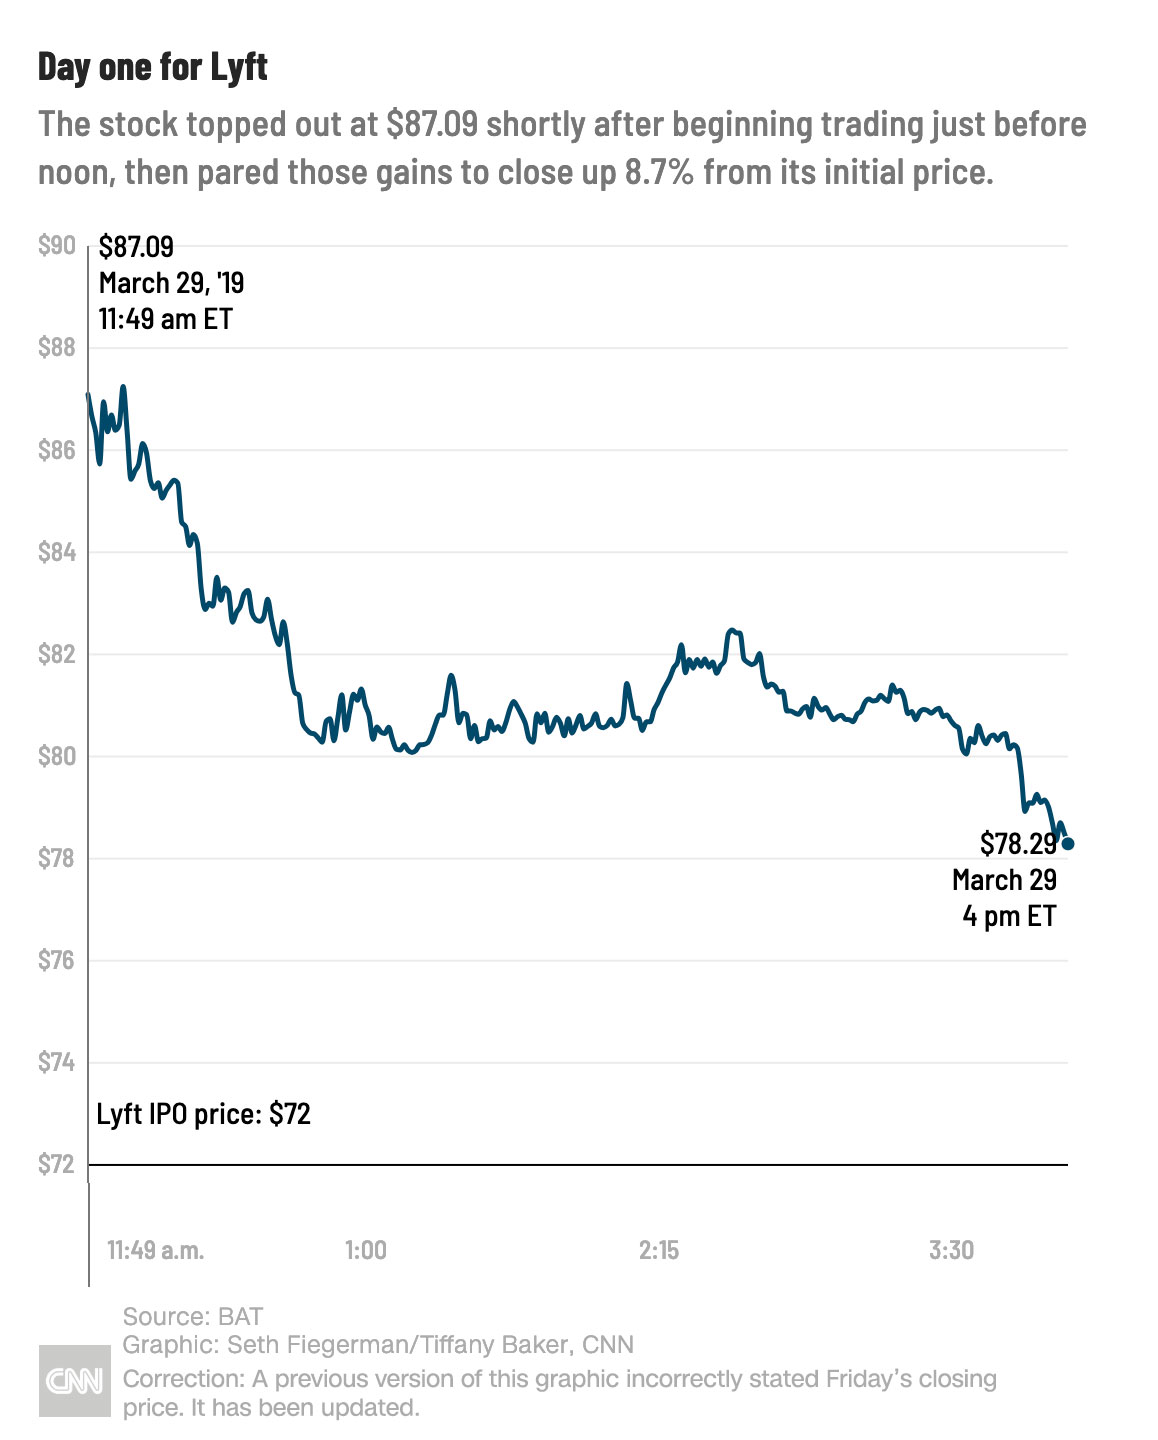 What was the uber ipo price